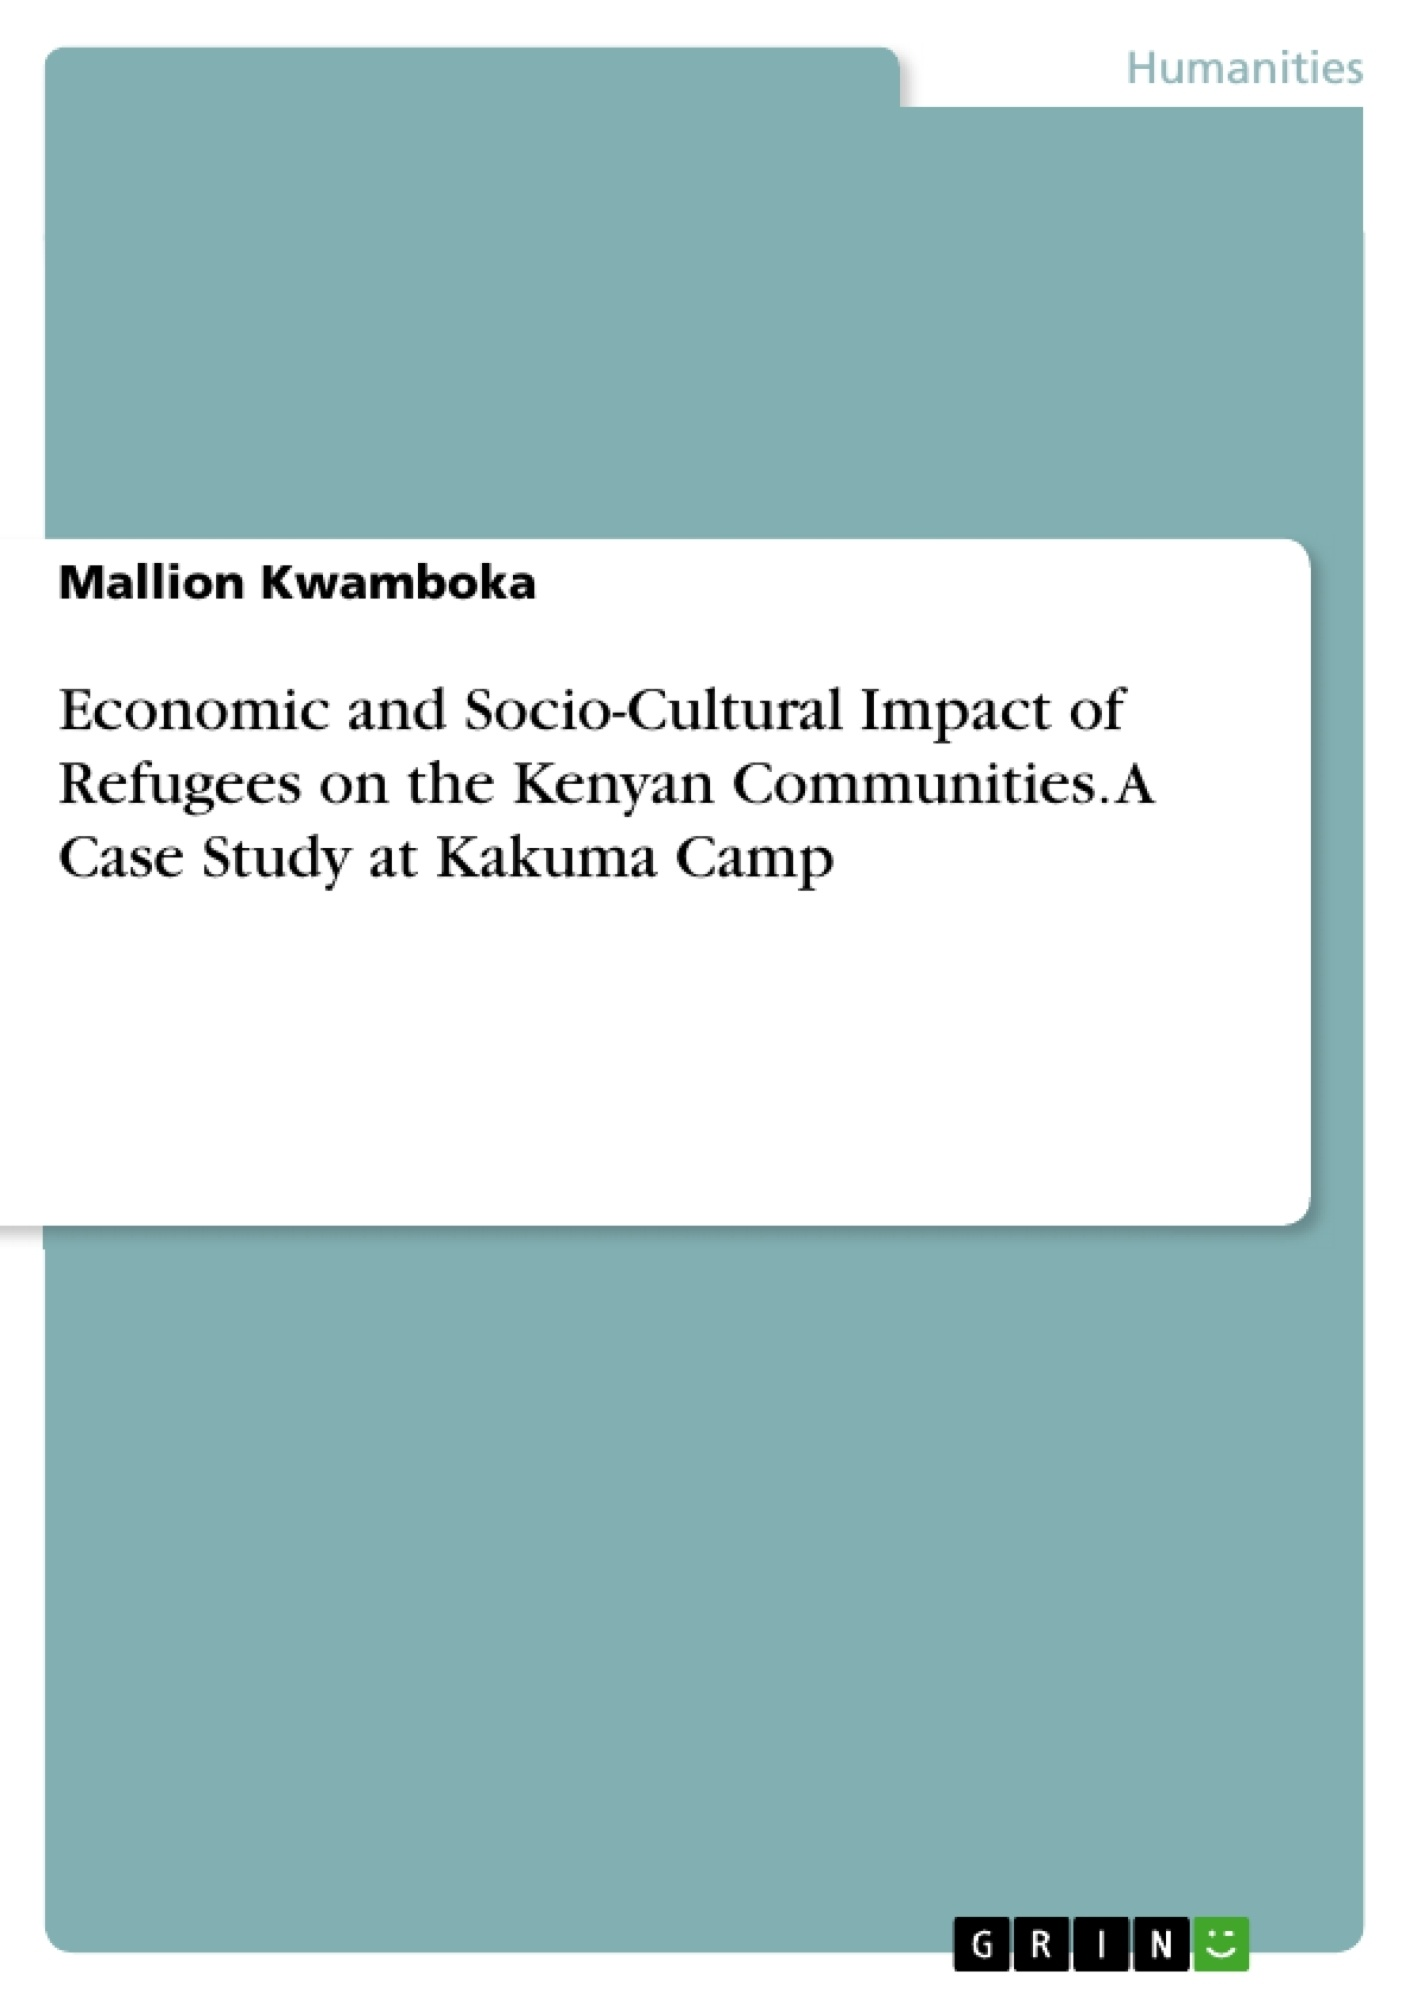 Title: Economic and Socio-Cultural Impact of Refugees on the Kenyan Communities. A Case Study at Kakuma Camp